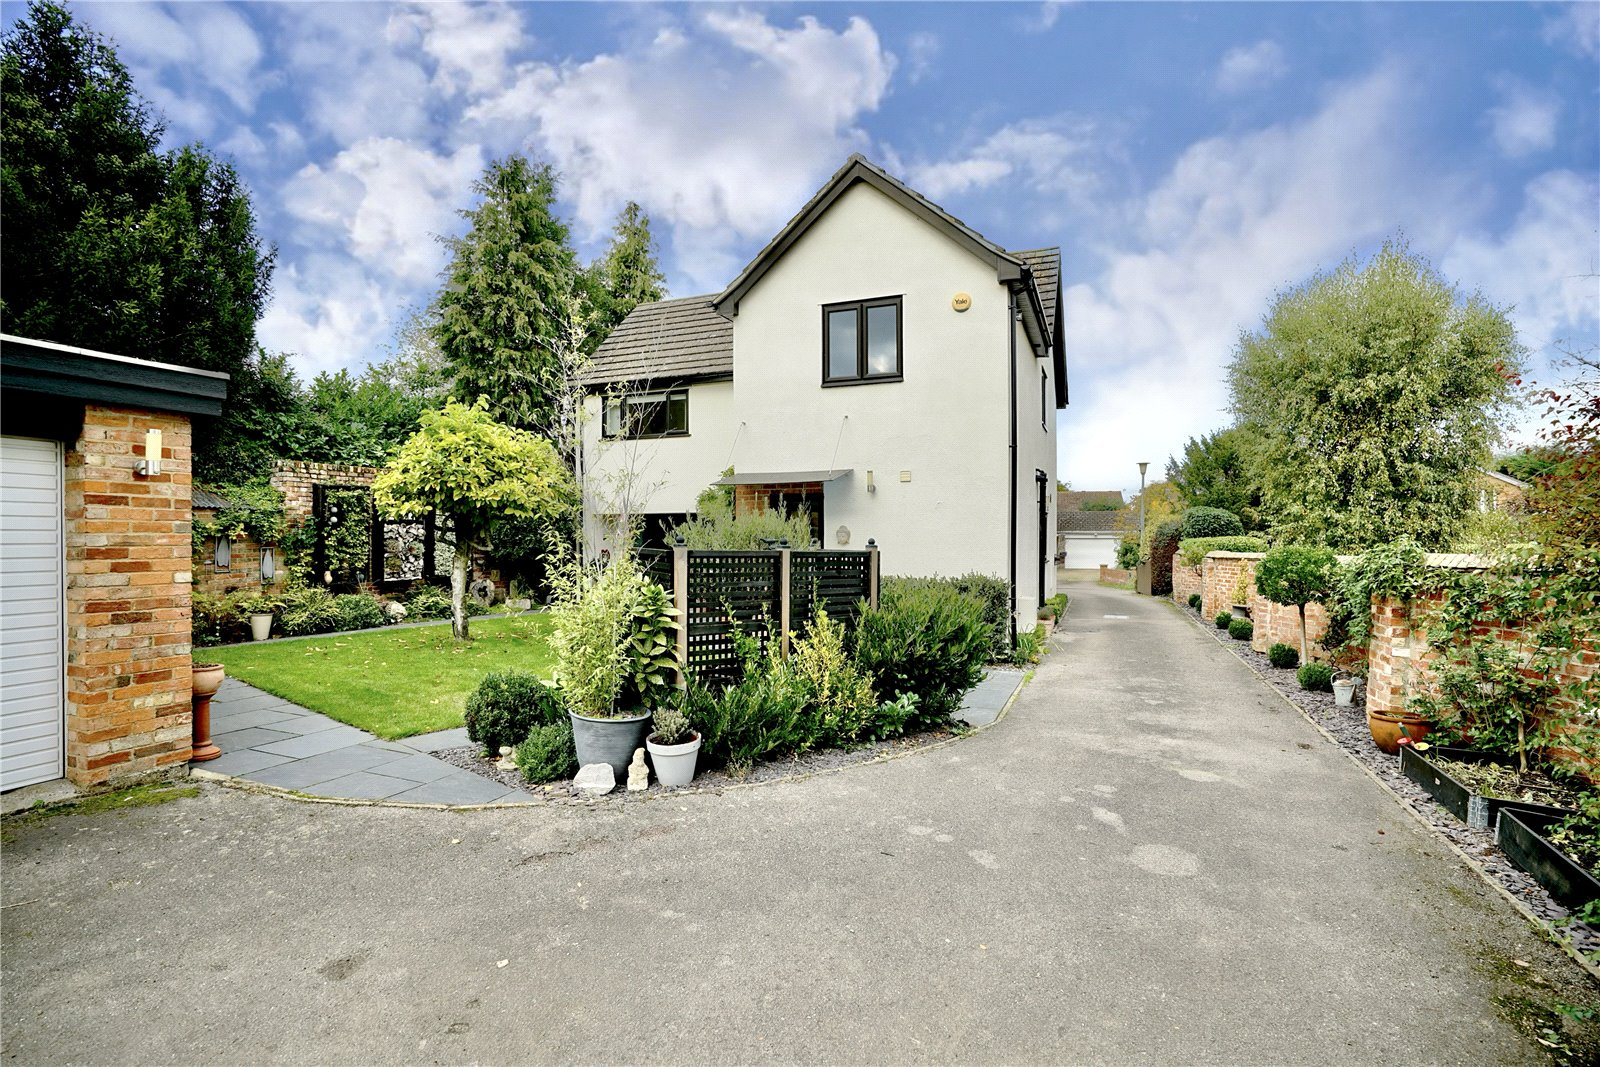 4 bed house for sale in Eaton Socon  - Property Image 15